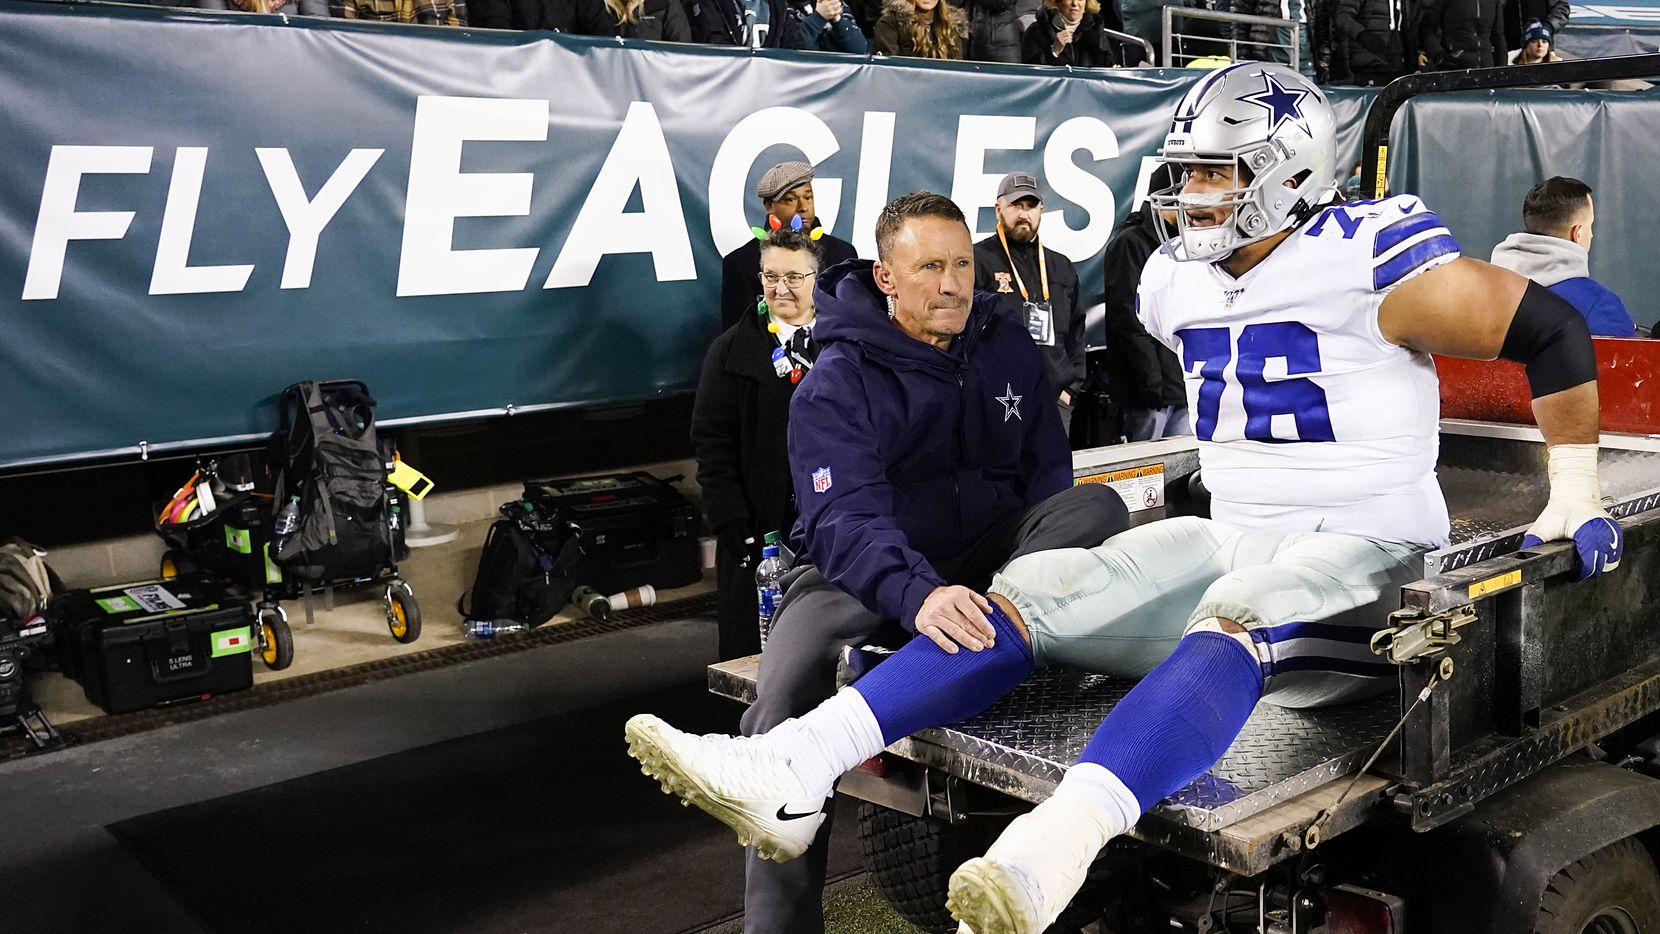 Dallas Cowboys offensive guard Xavier Su'a-Filo leaves the field on a cart after being injured during the second half of an NFL football game against the Philadelphia Eagles at Lincoln Financial Field on Sunday, Dec. 22, 2019, in Philadelphia.